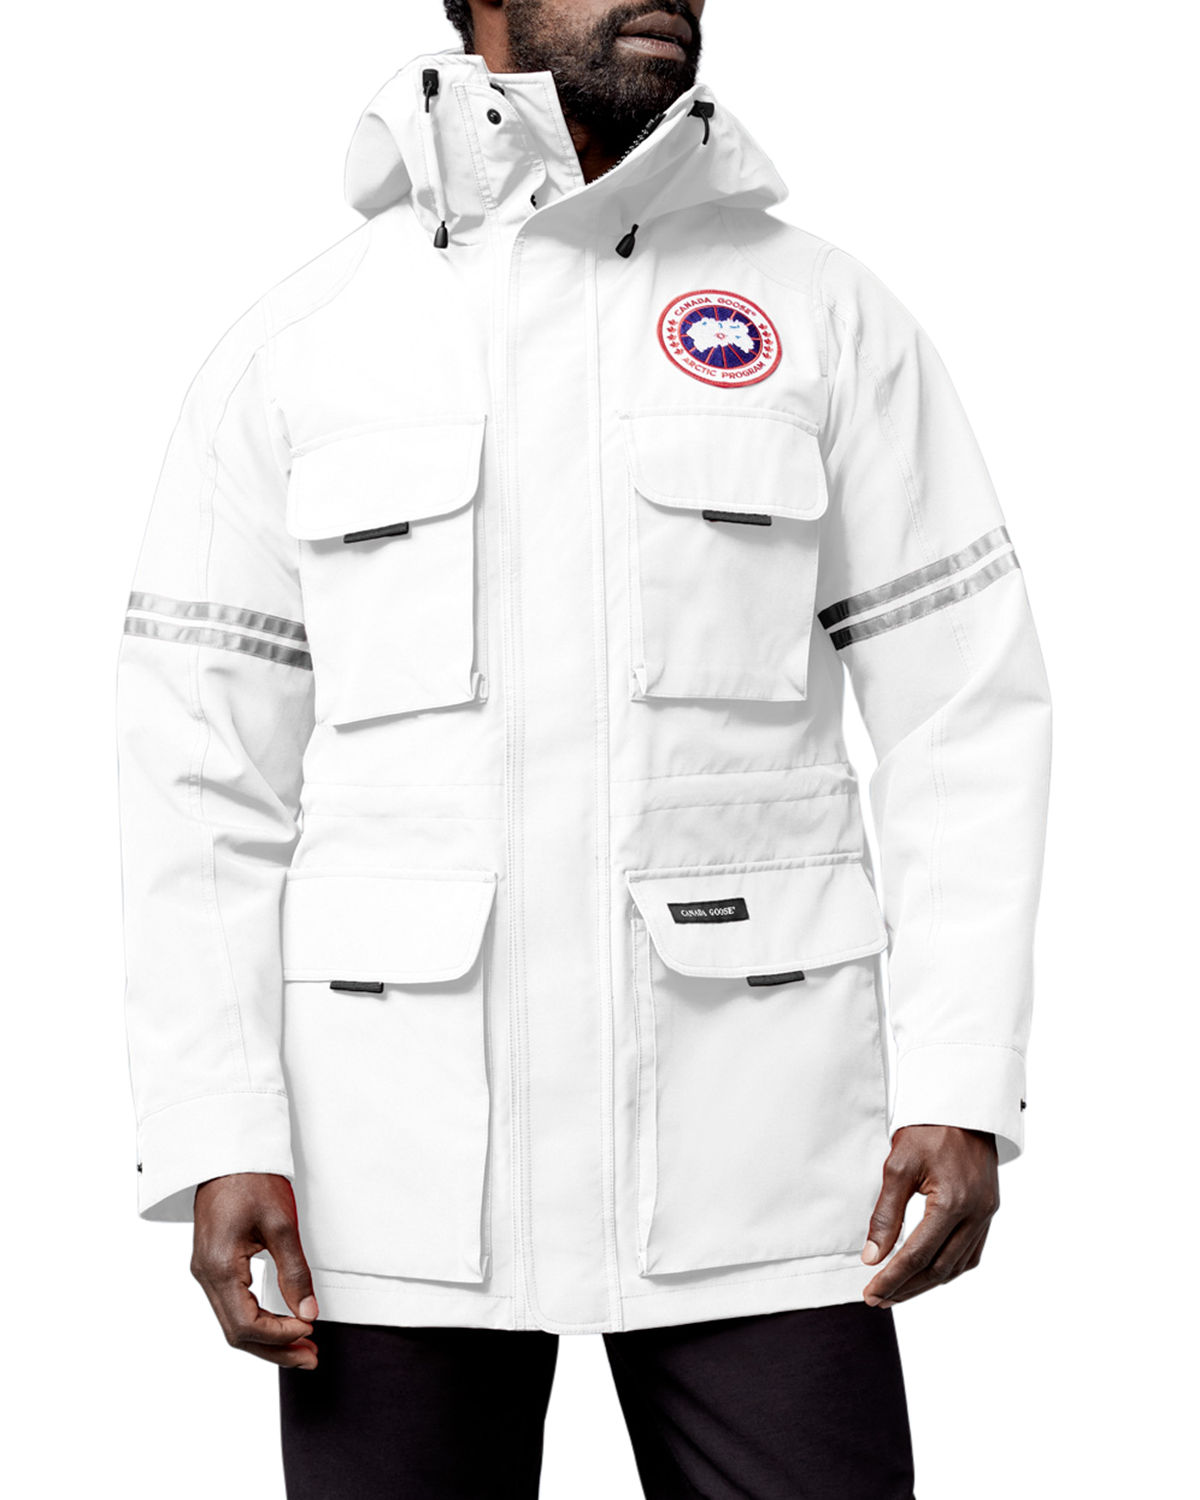 Canada Goose Jackets MEN'S SCIENCE RESEARCH JACKET